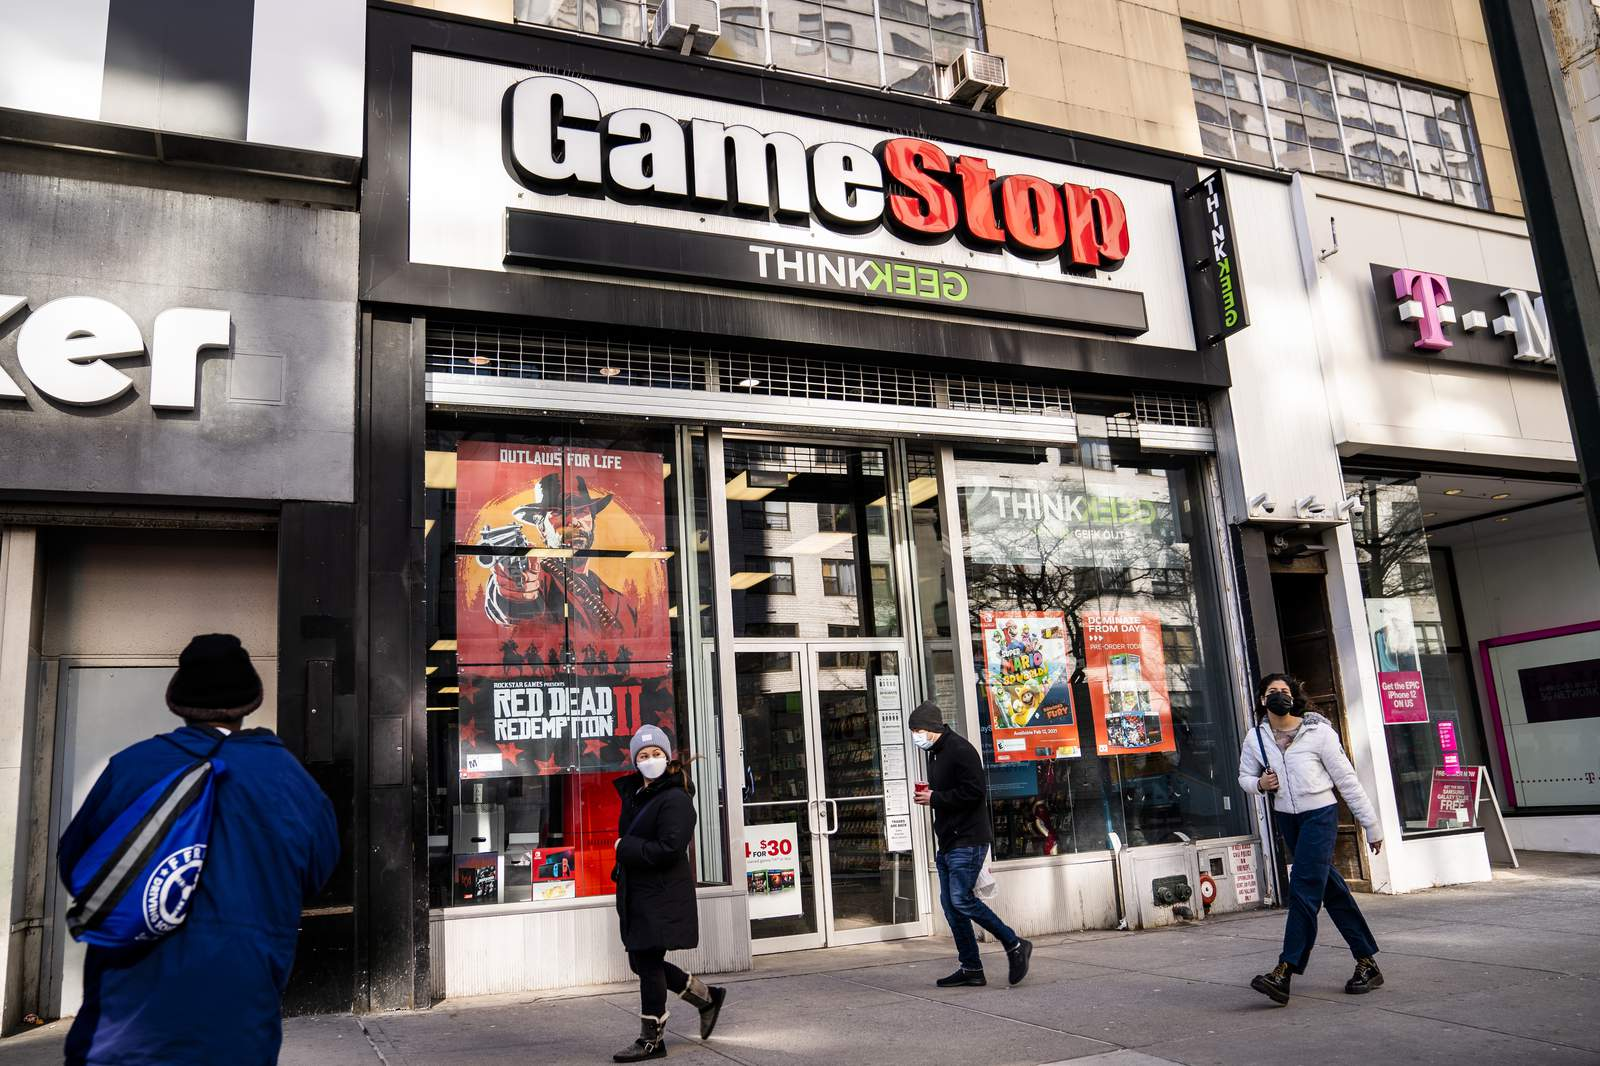 gamestop shares drop 60% as frenzied rally loses steam